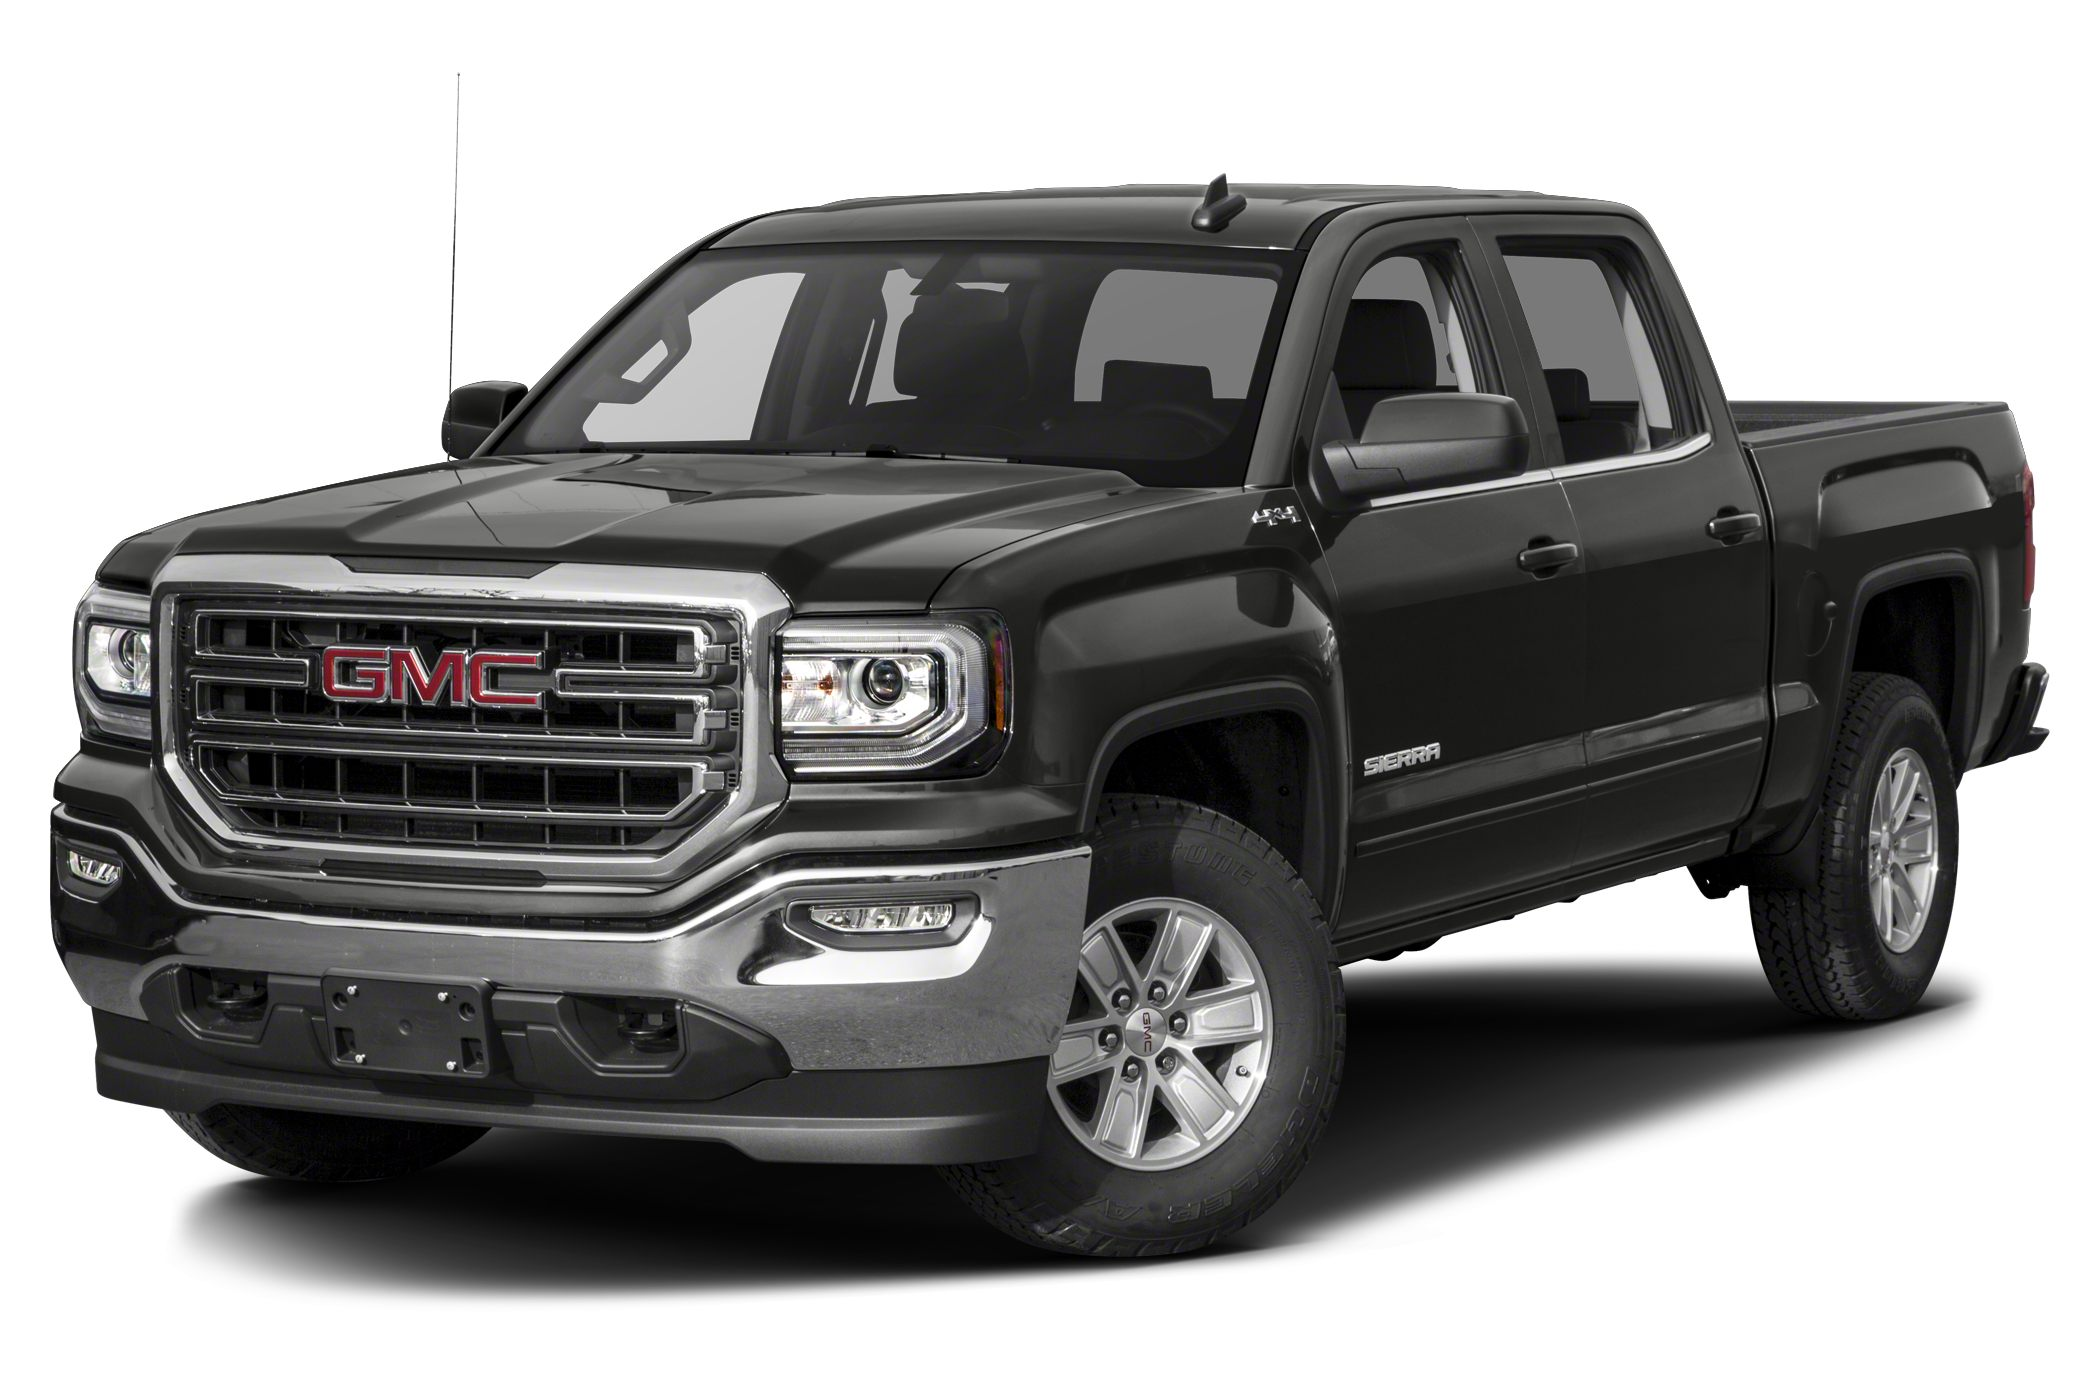 2017 GMC Sierra 1500 SLE If youre shopping for a quality vehicle with perks such as a braking ass